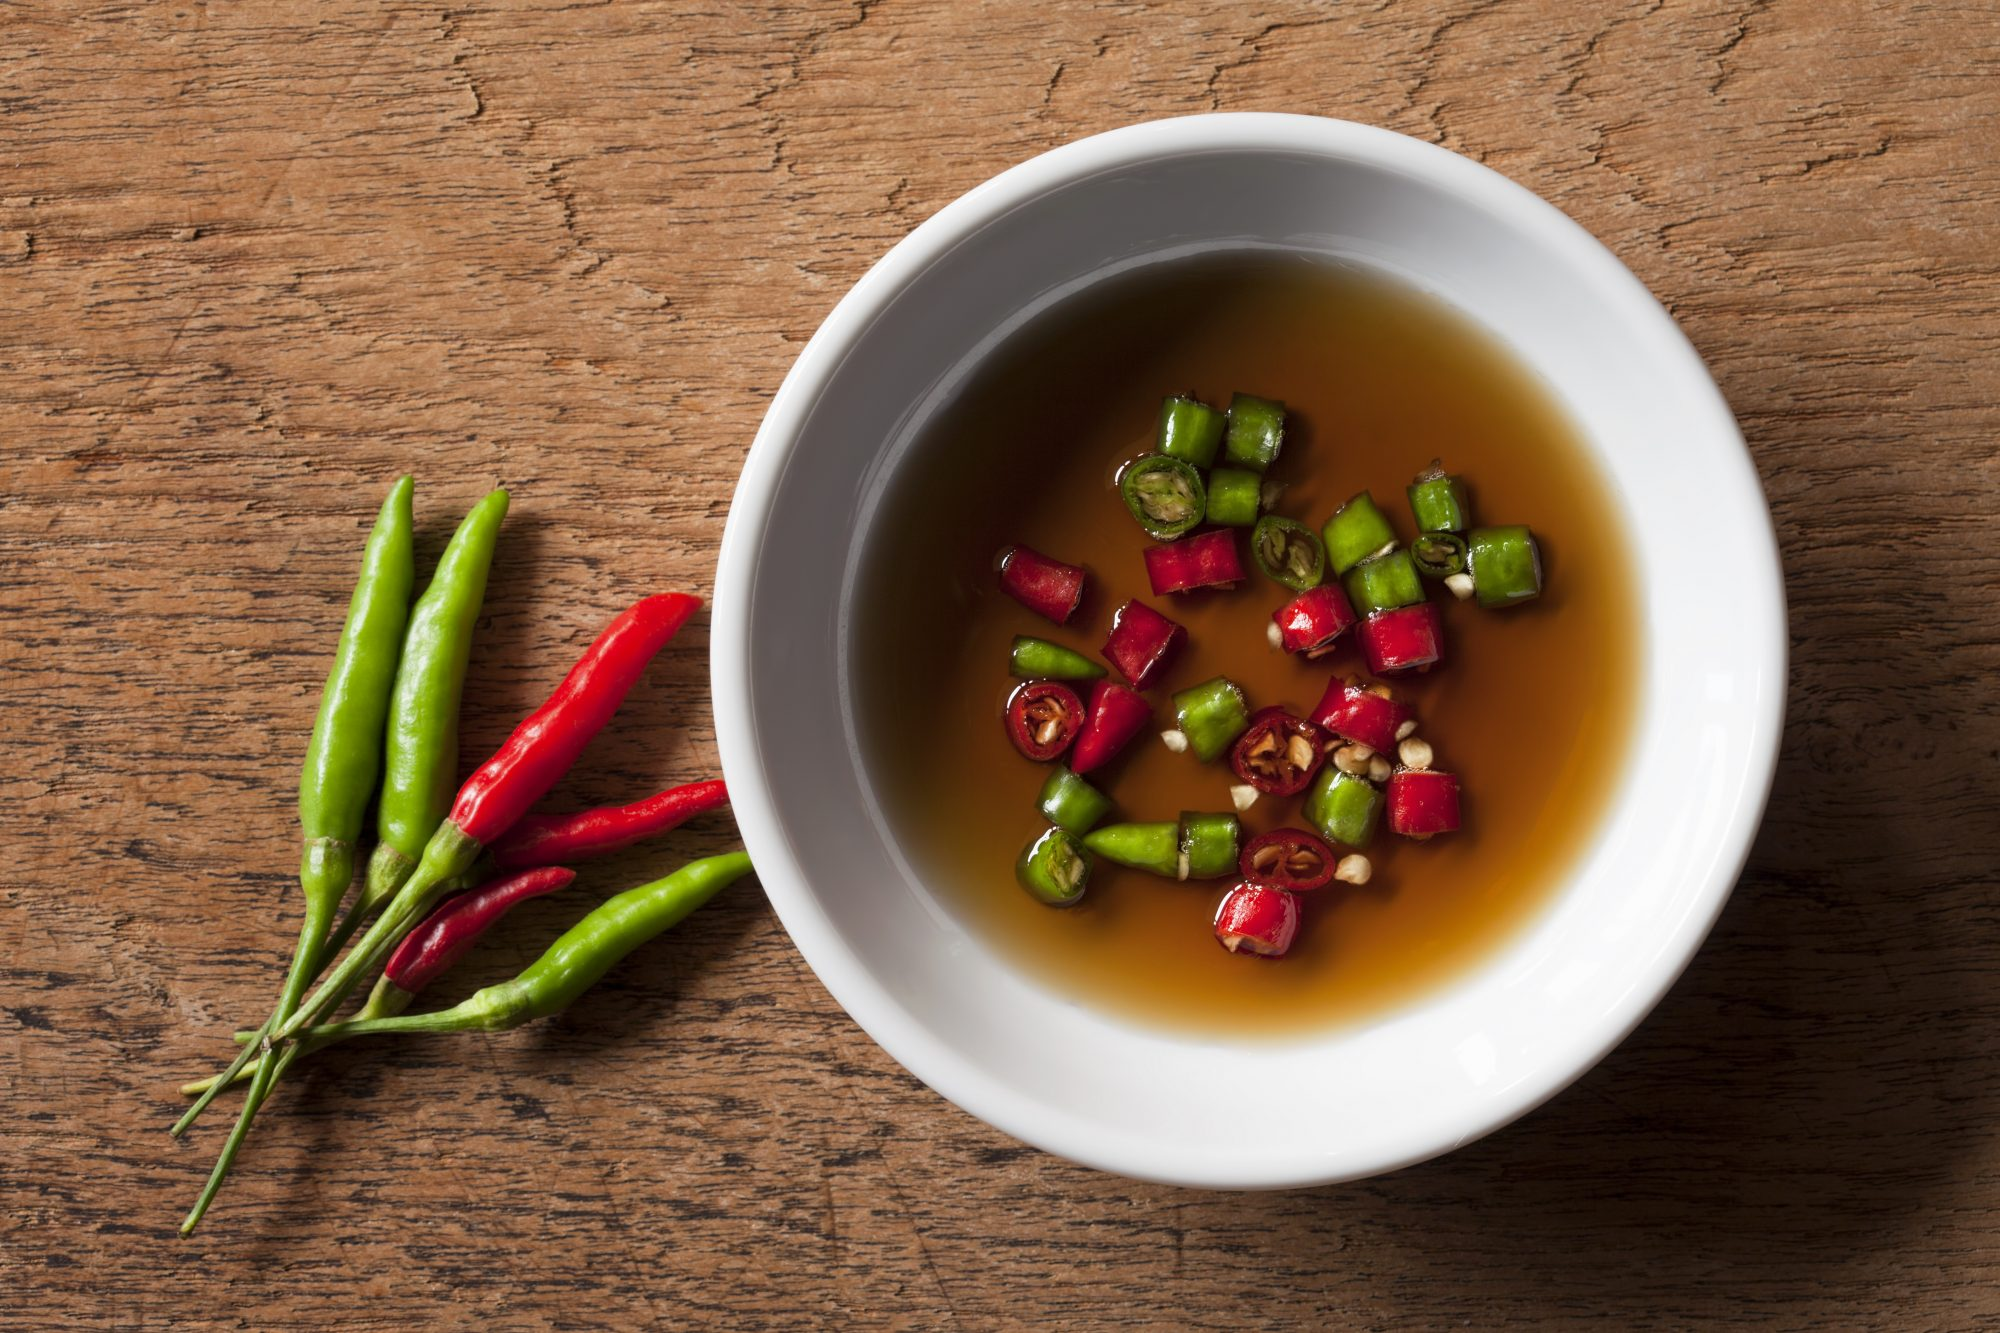 What Is Fish Sauce and How Do I Use It?